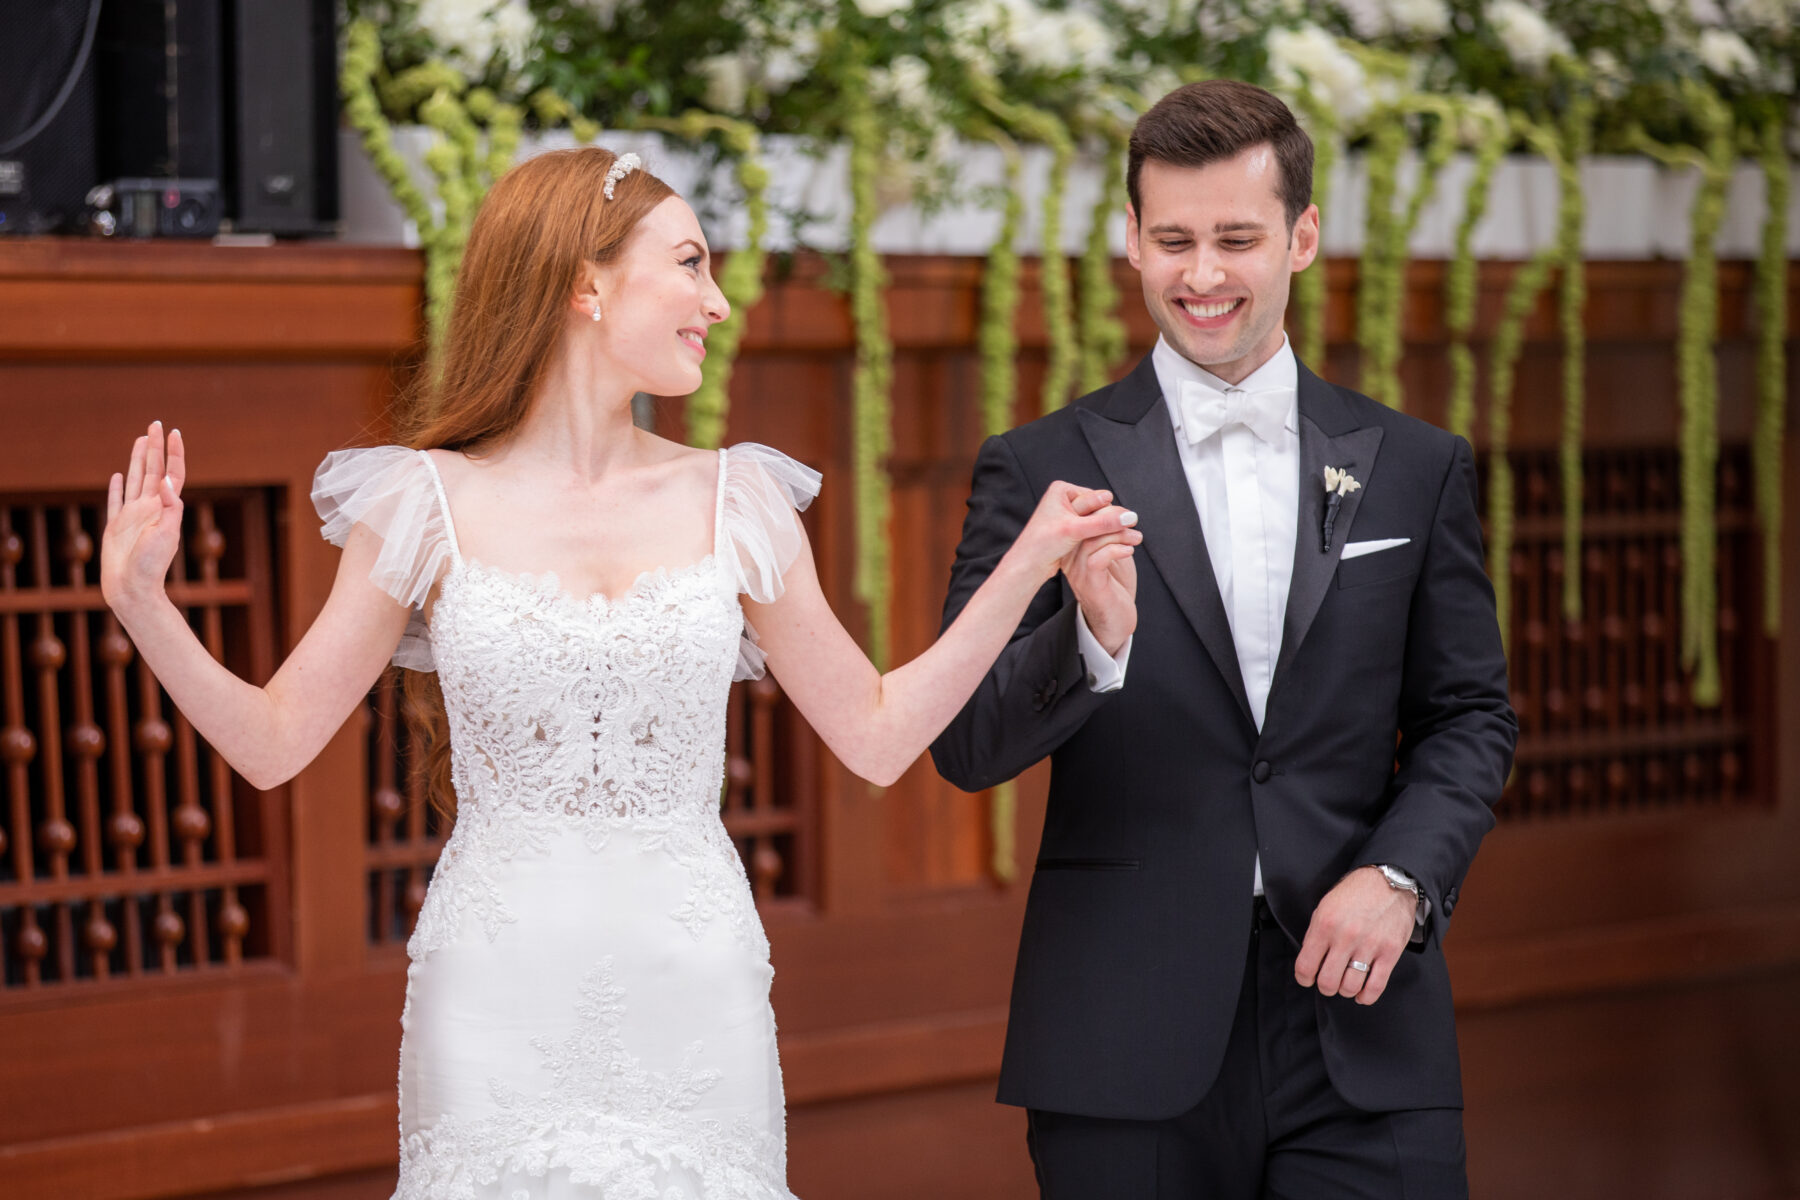 Wedding first dance: Floral Filled Luxurious Wedding by LMA Designs featured on Nashville Bride Guide